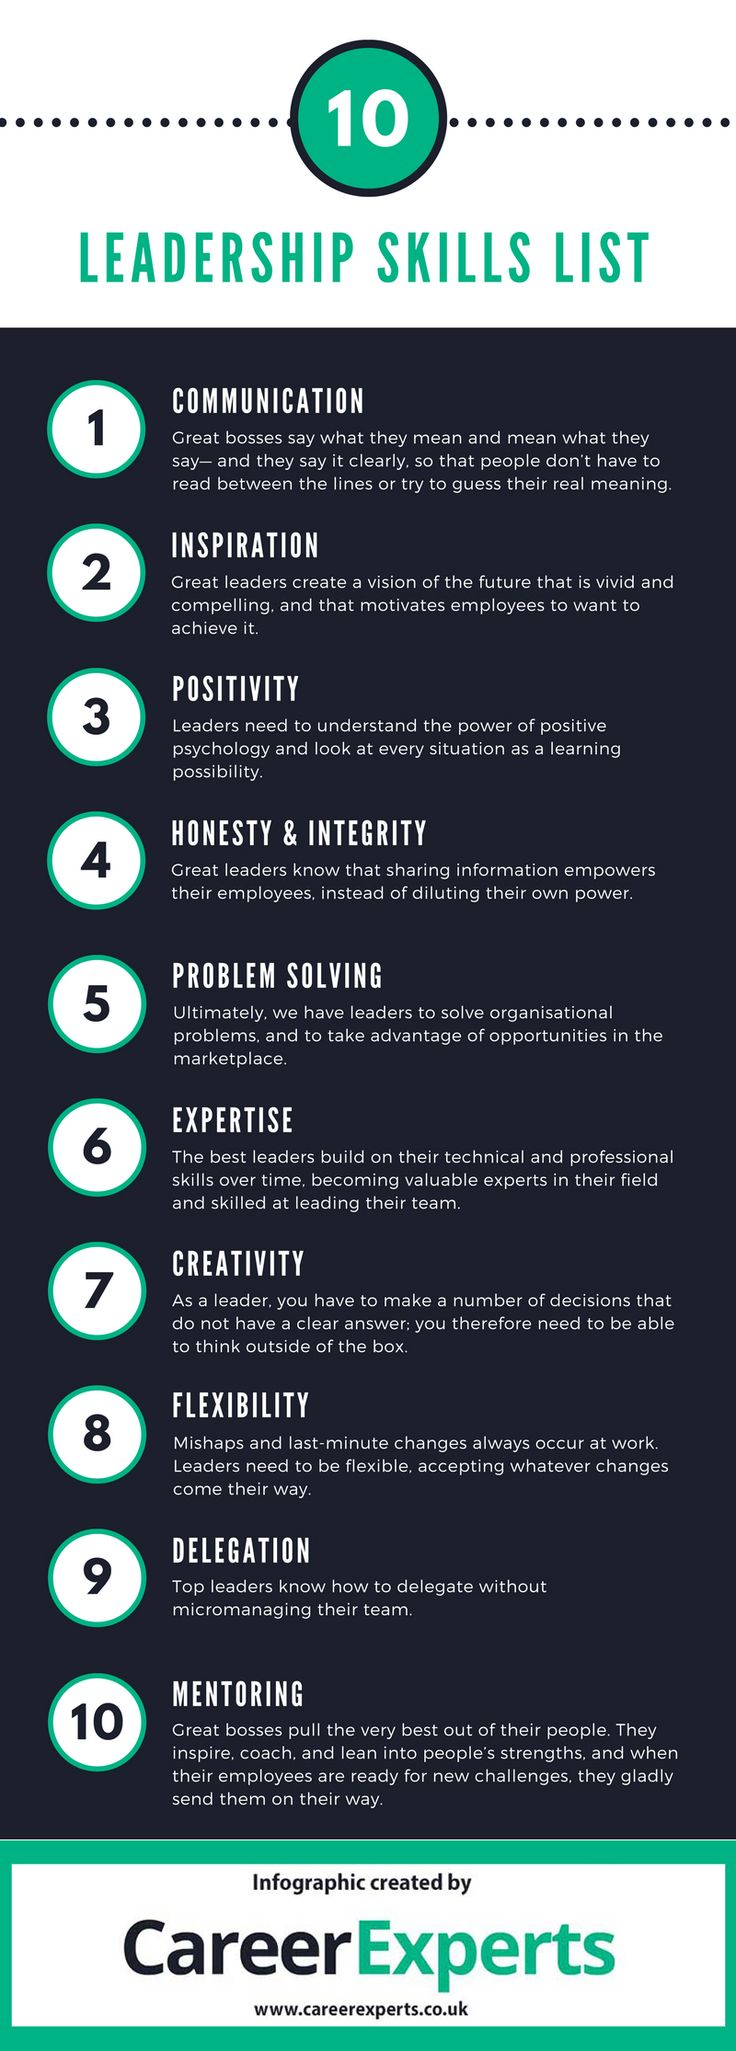 If you work on these crucial leadership skills and strive to continually improve yourself, you'll be able to drive both yourself and your team to success!